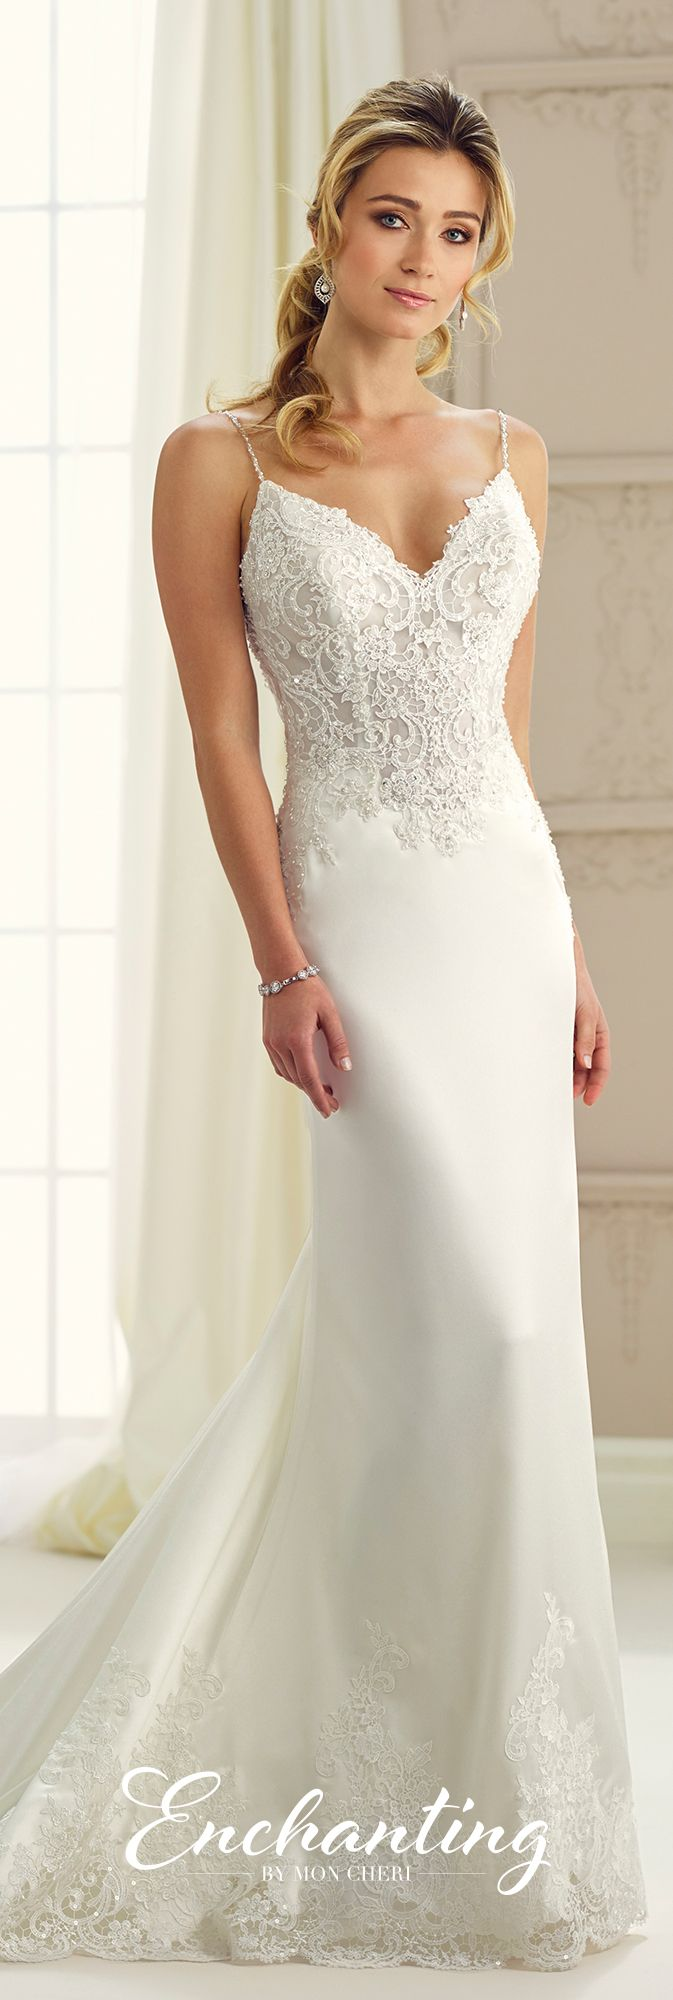 Enchanting by Mon Cheri Fall 2017 Collection - Style 217123 - sleeveless satin and lace sheath wedding dress with hand-beaded spaghetti straps